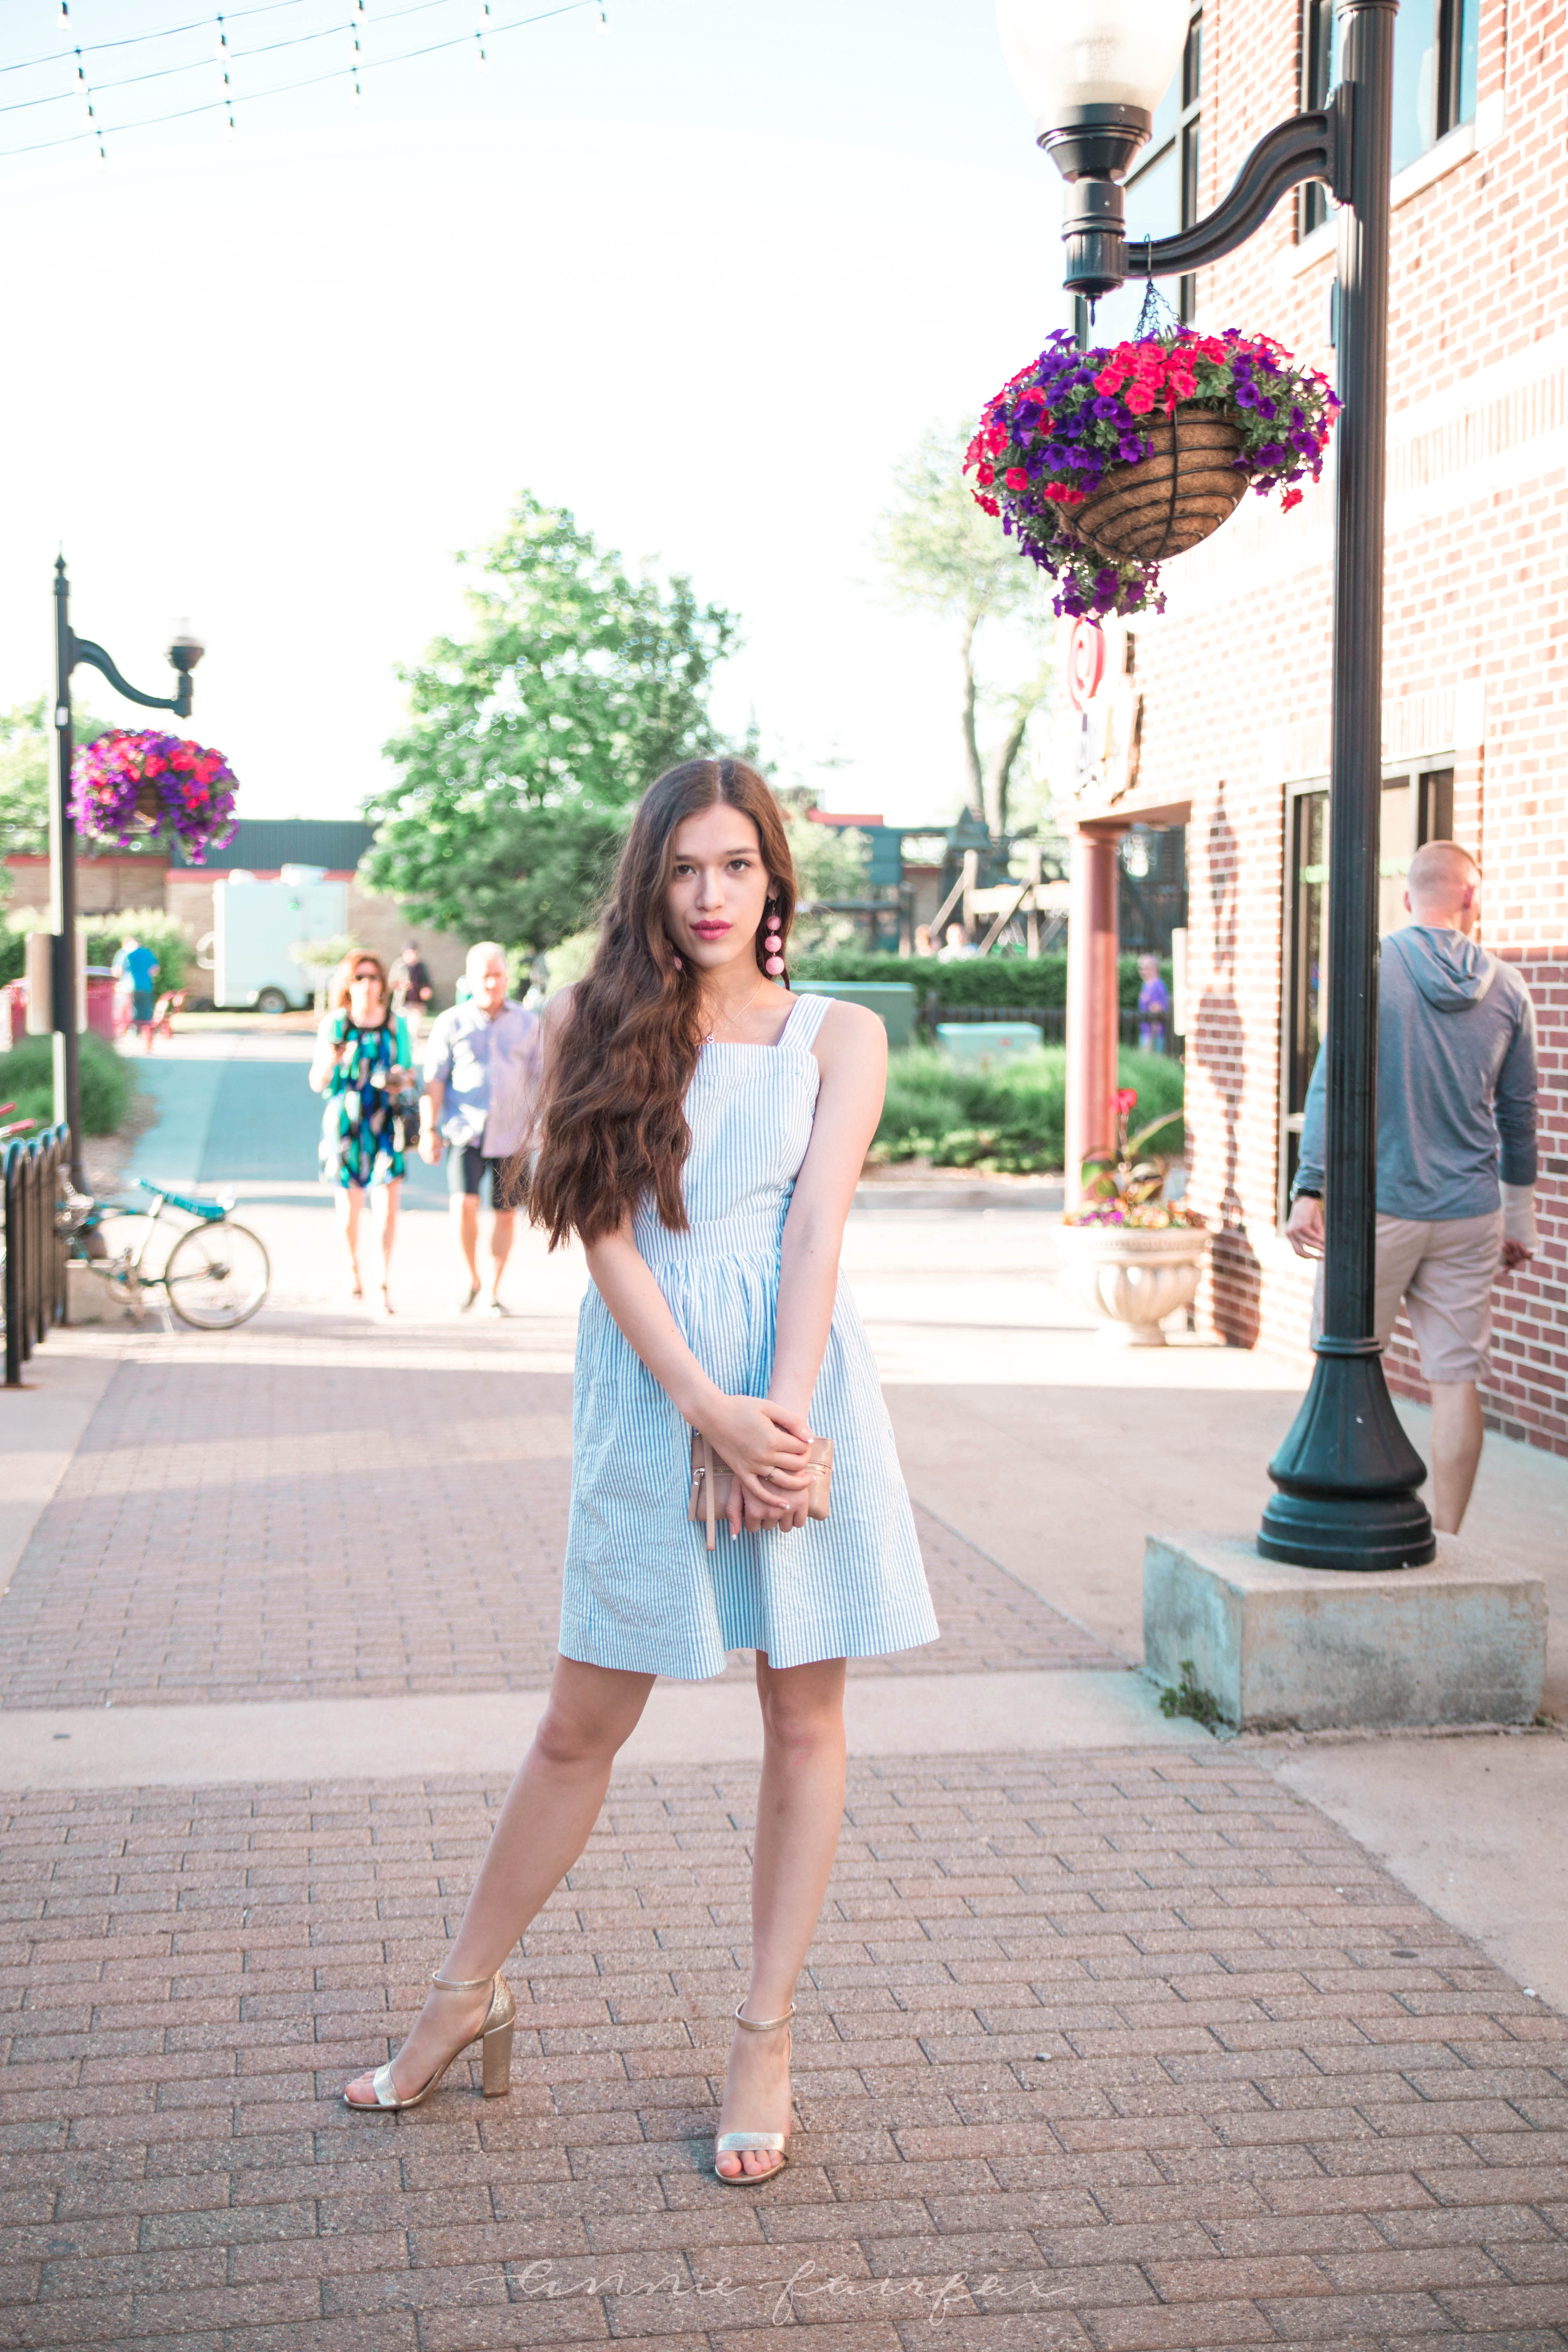 j. crew jcrew factory blue and white seersucker minidress fit and flare dress with pockets above the knee gold metallic chunky heels long brown wavy hair girl standing on sidewalk preppy style flattering for any body type